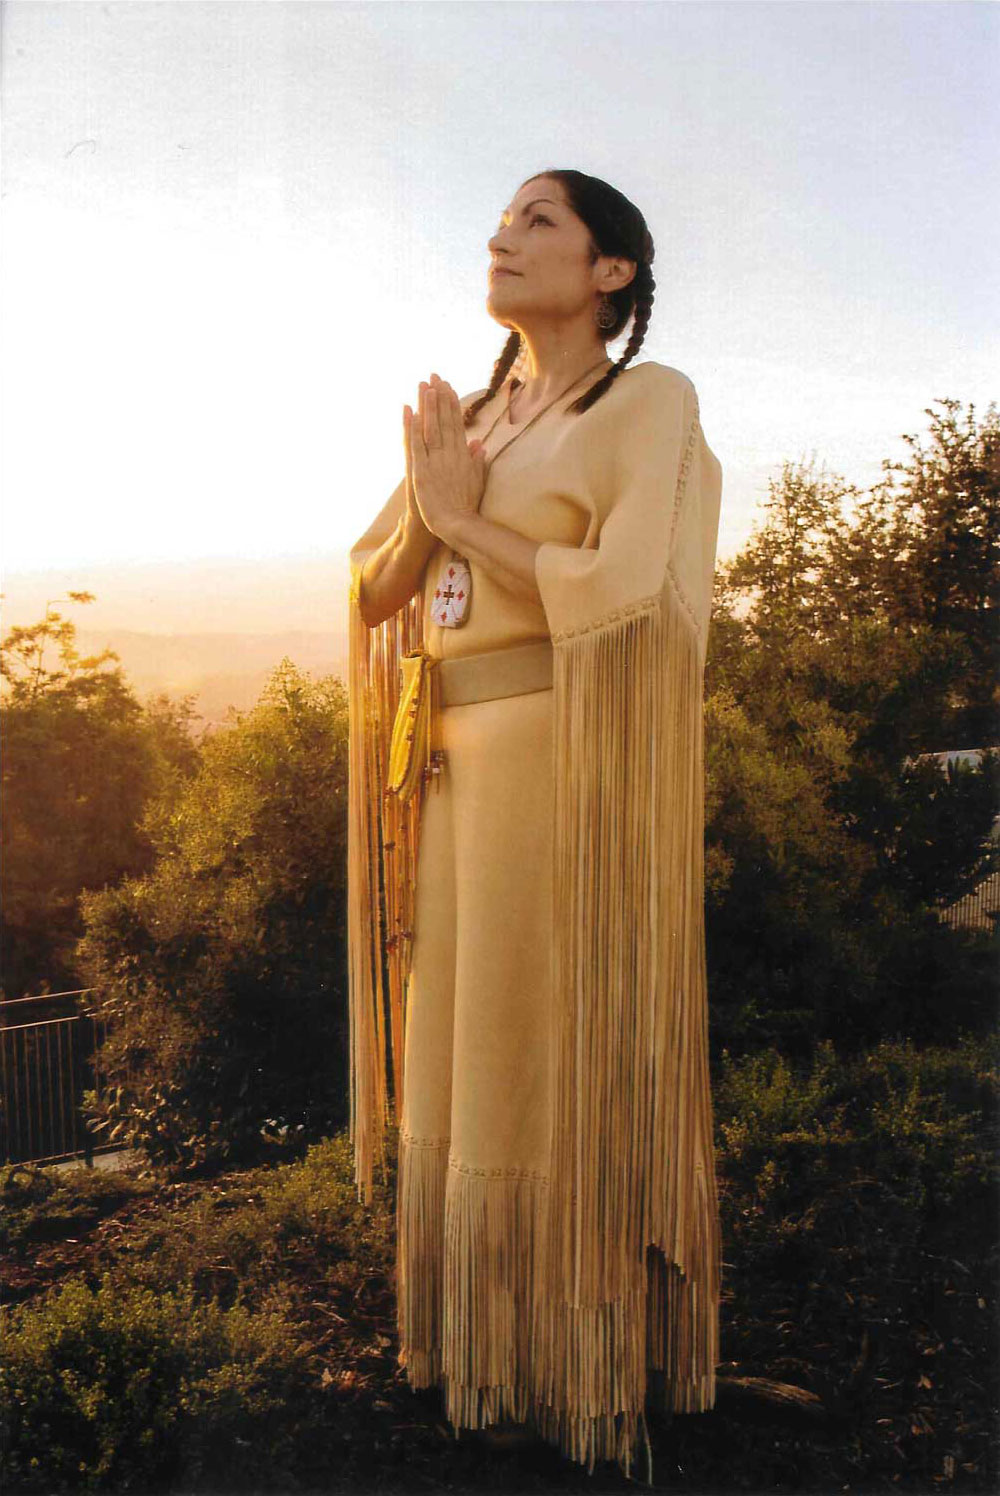 Monica Ortiz in Native American regalia